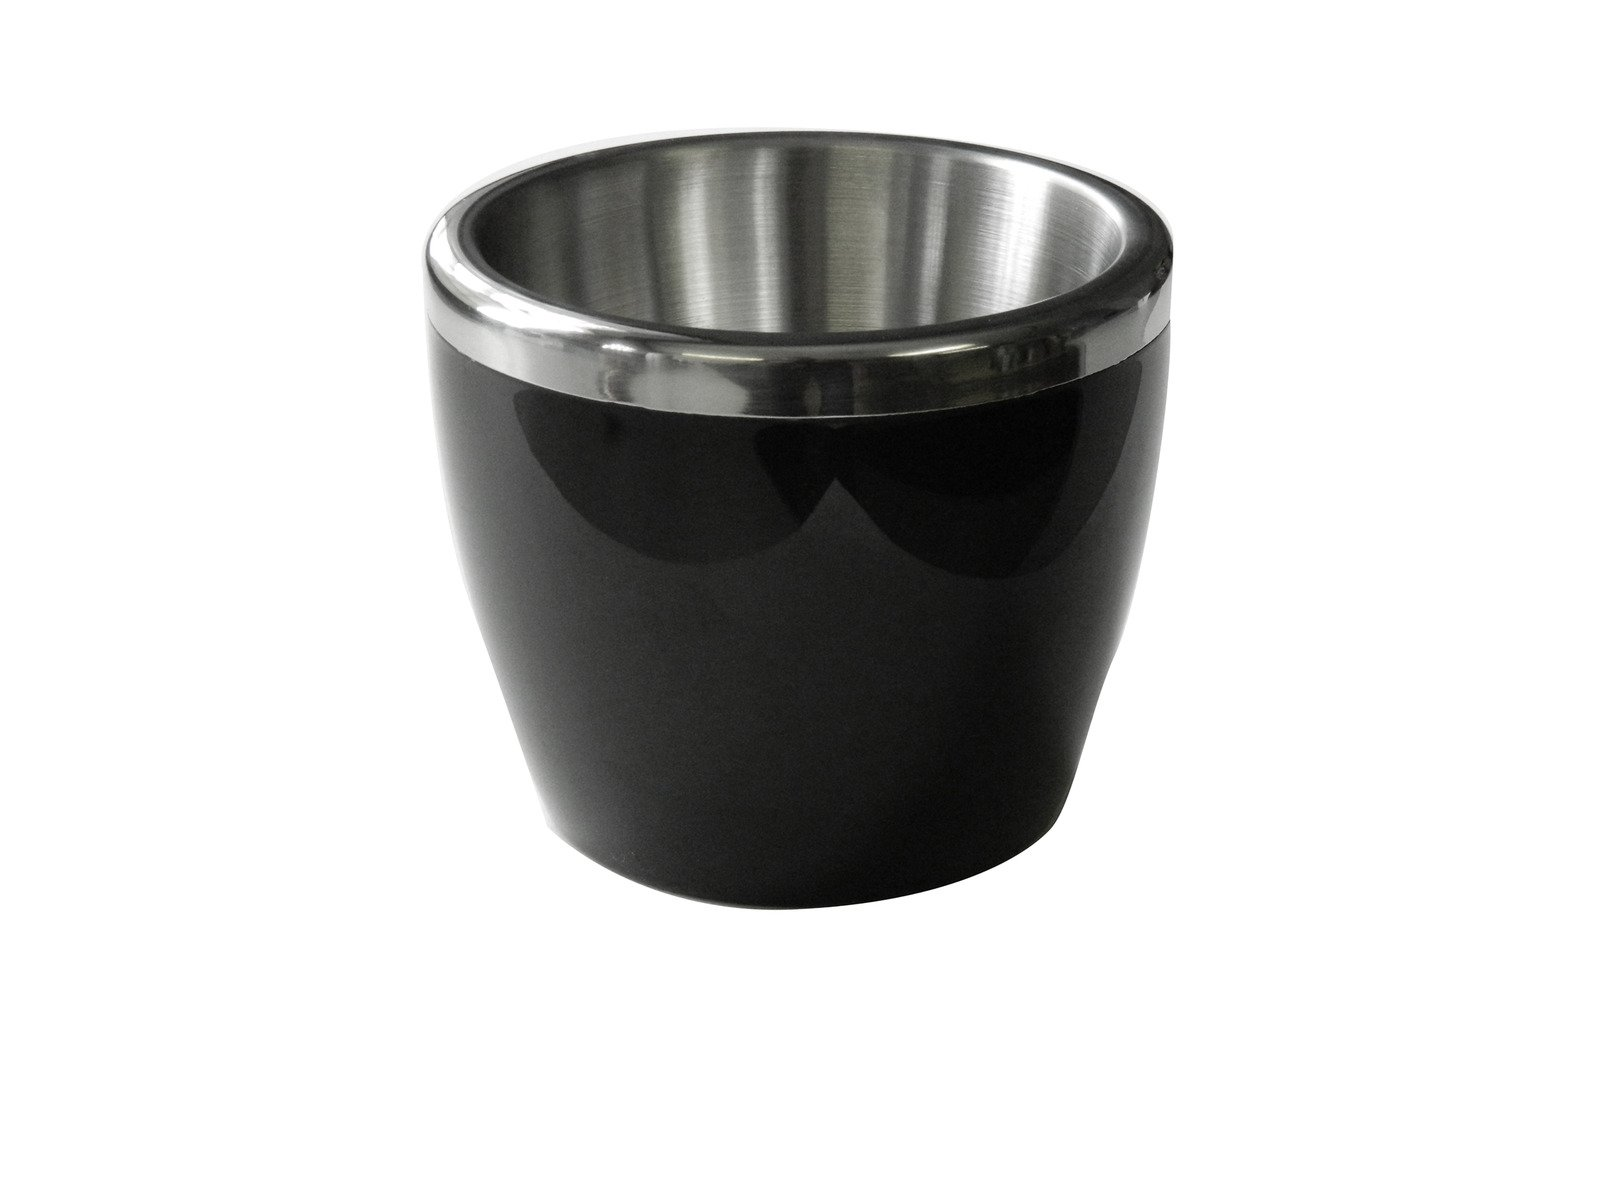 Small Black Ice Bucket Stainless Steel Rim and Lining Kitchen Gadgets Restaurant Bartending Cocktails